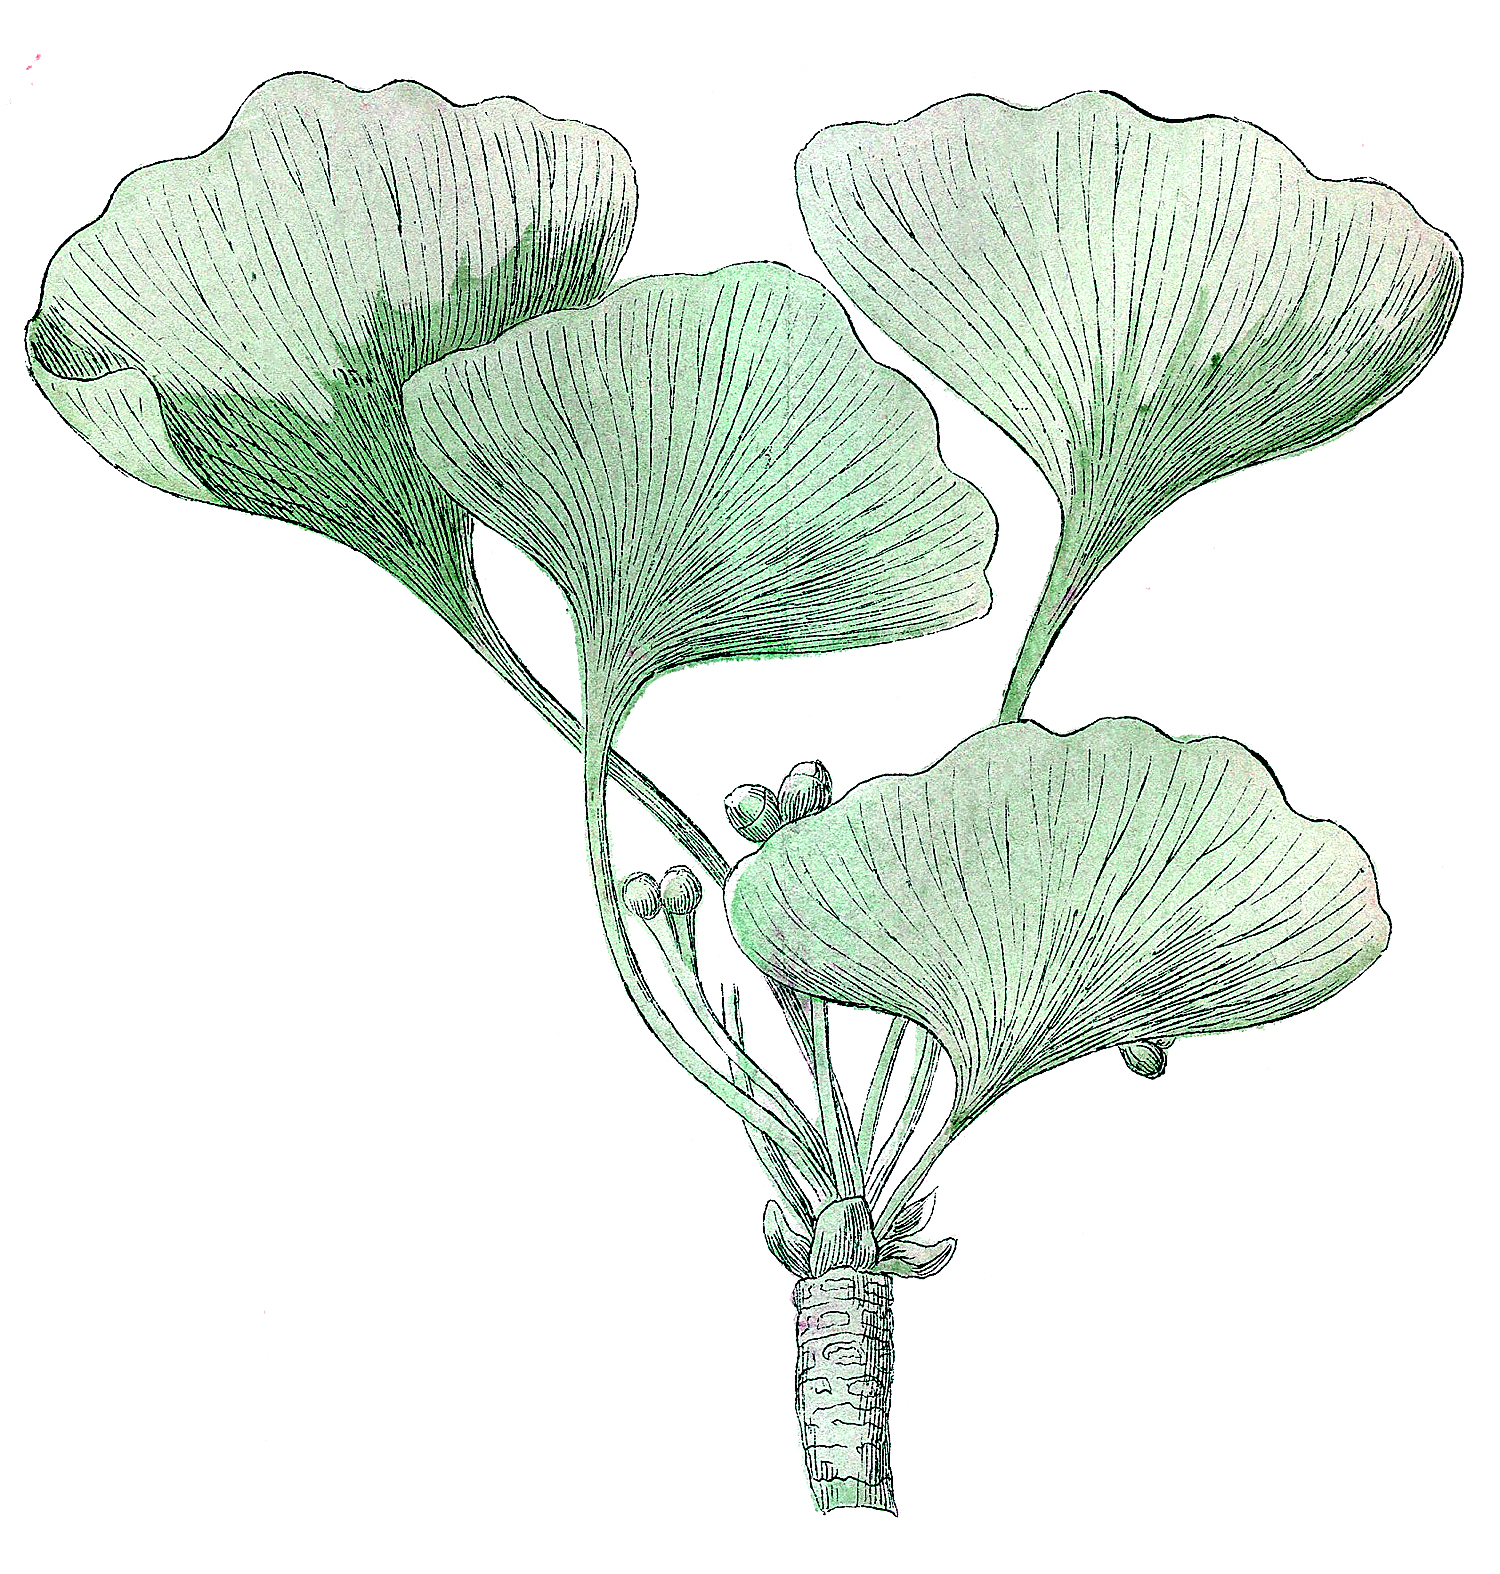 The Graphics Fairy: Ginkgo Biloba Image